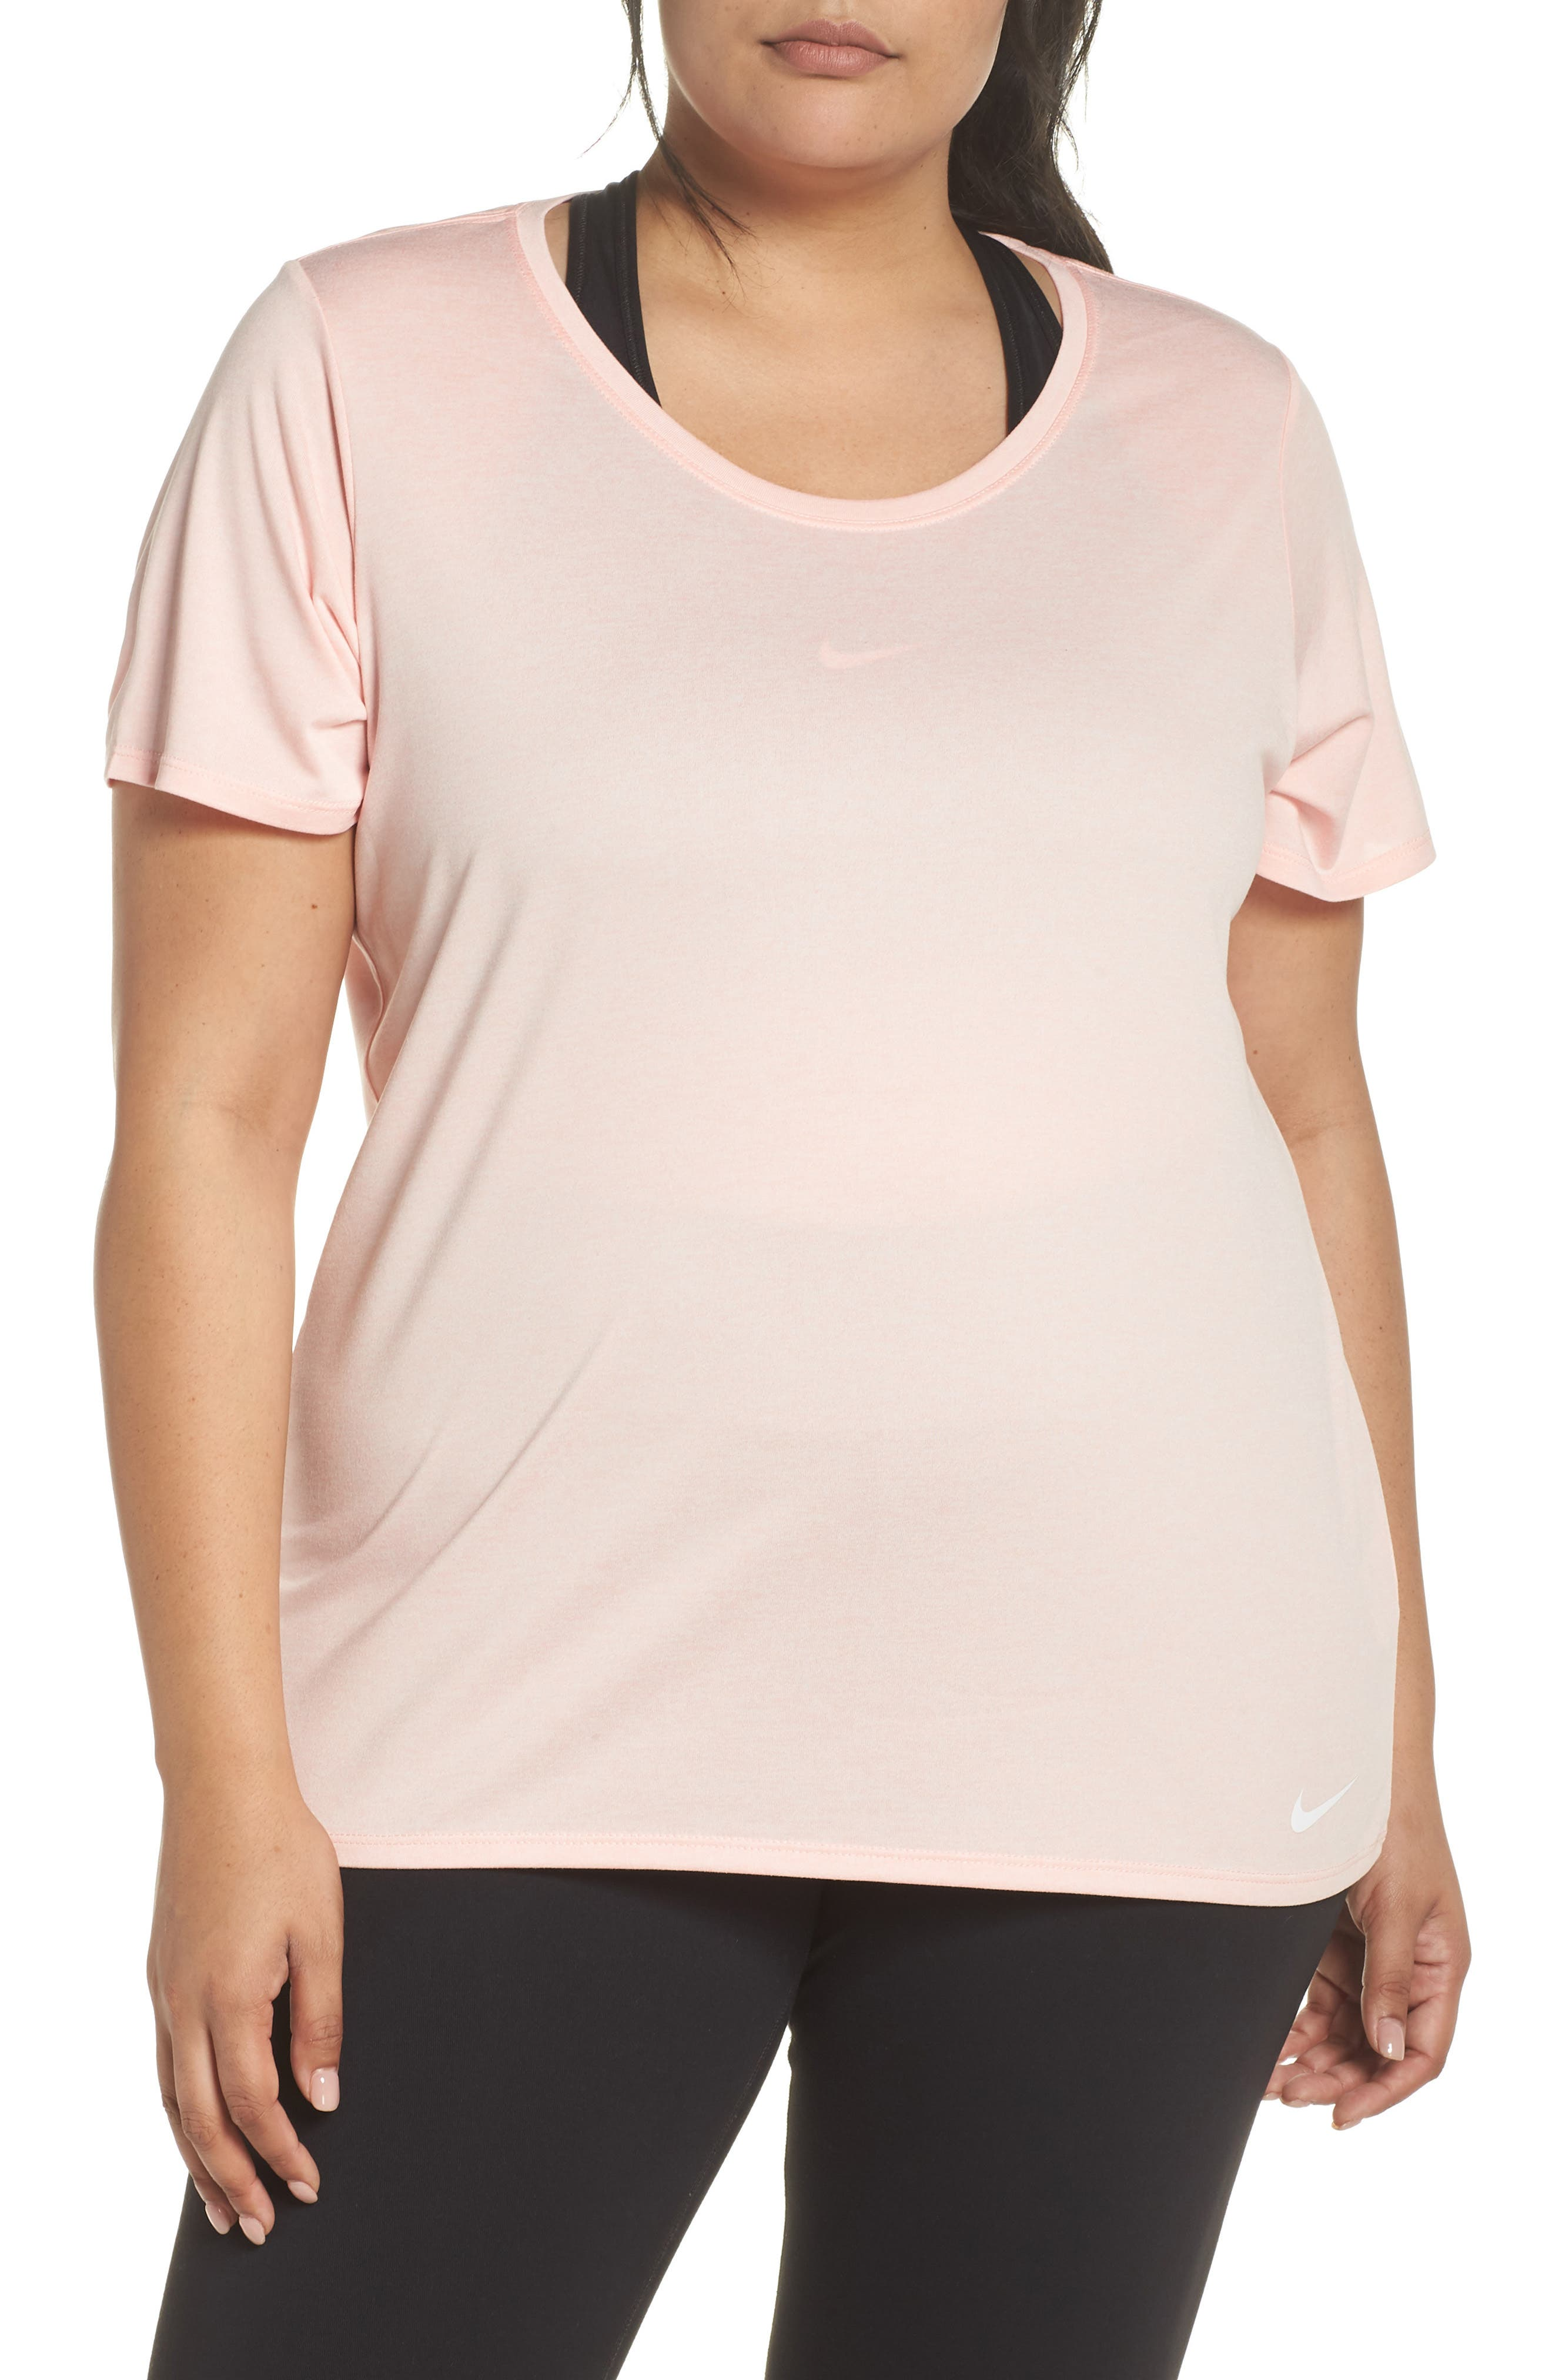 Dry Legend Training Tee,                         Main,                         color, Storm Pink/ White/ White